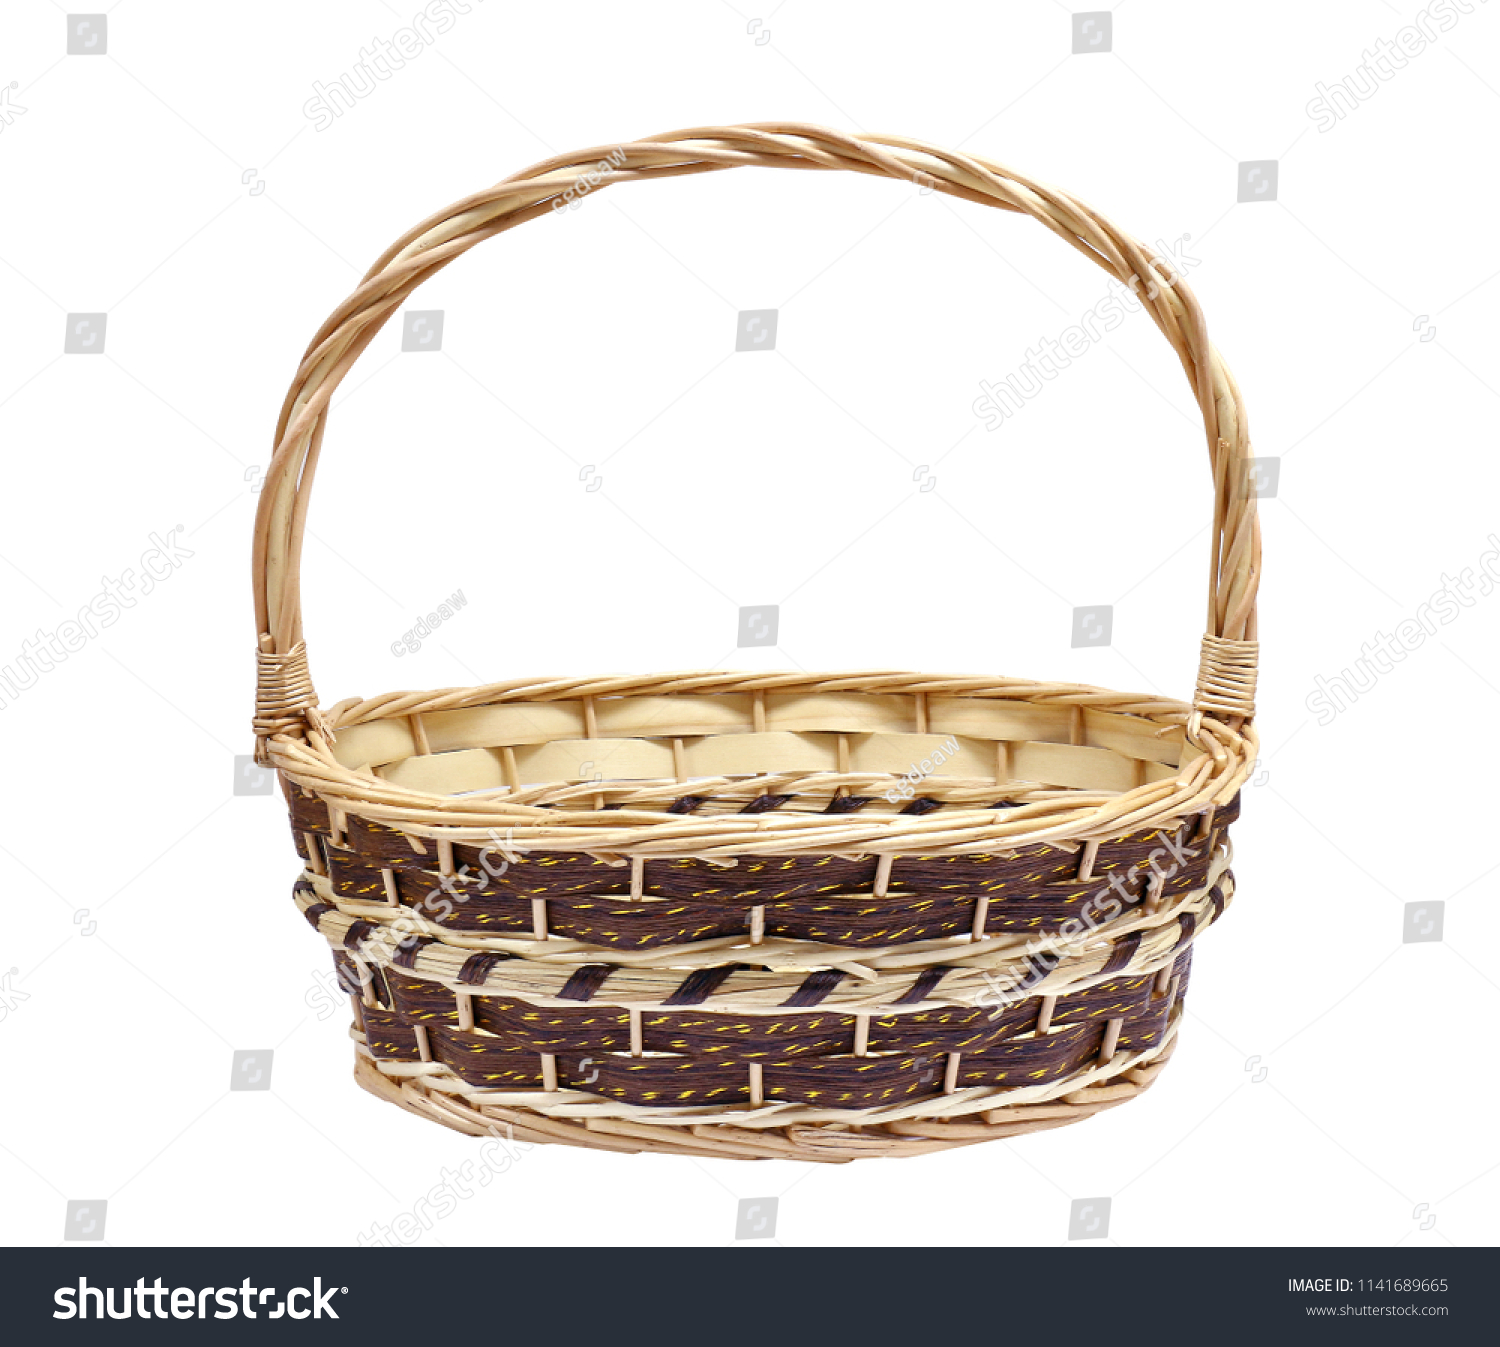 Wicker Baskets Gift Set Pack Crafts Stock Photo Edit Now 1141689665